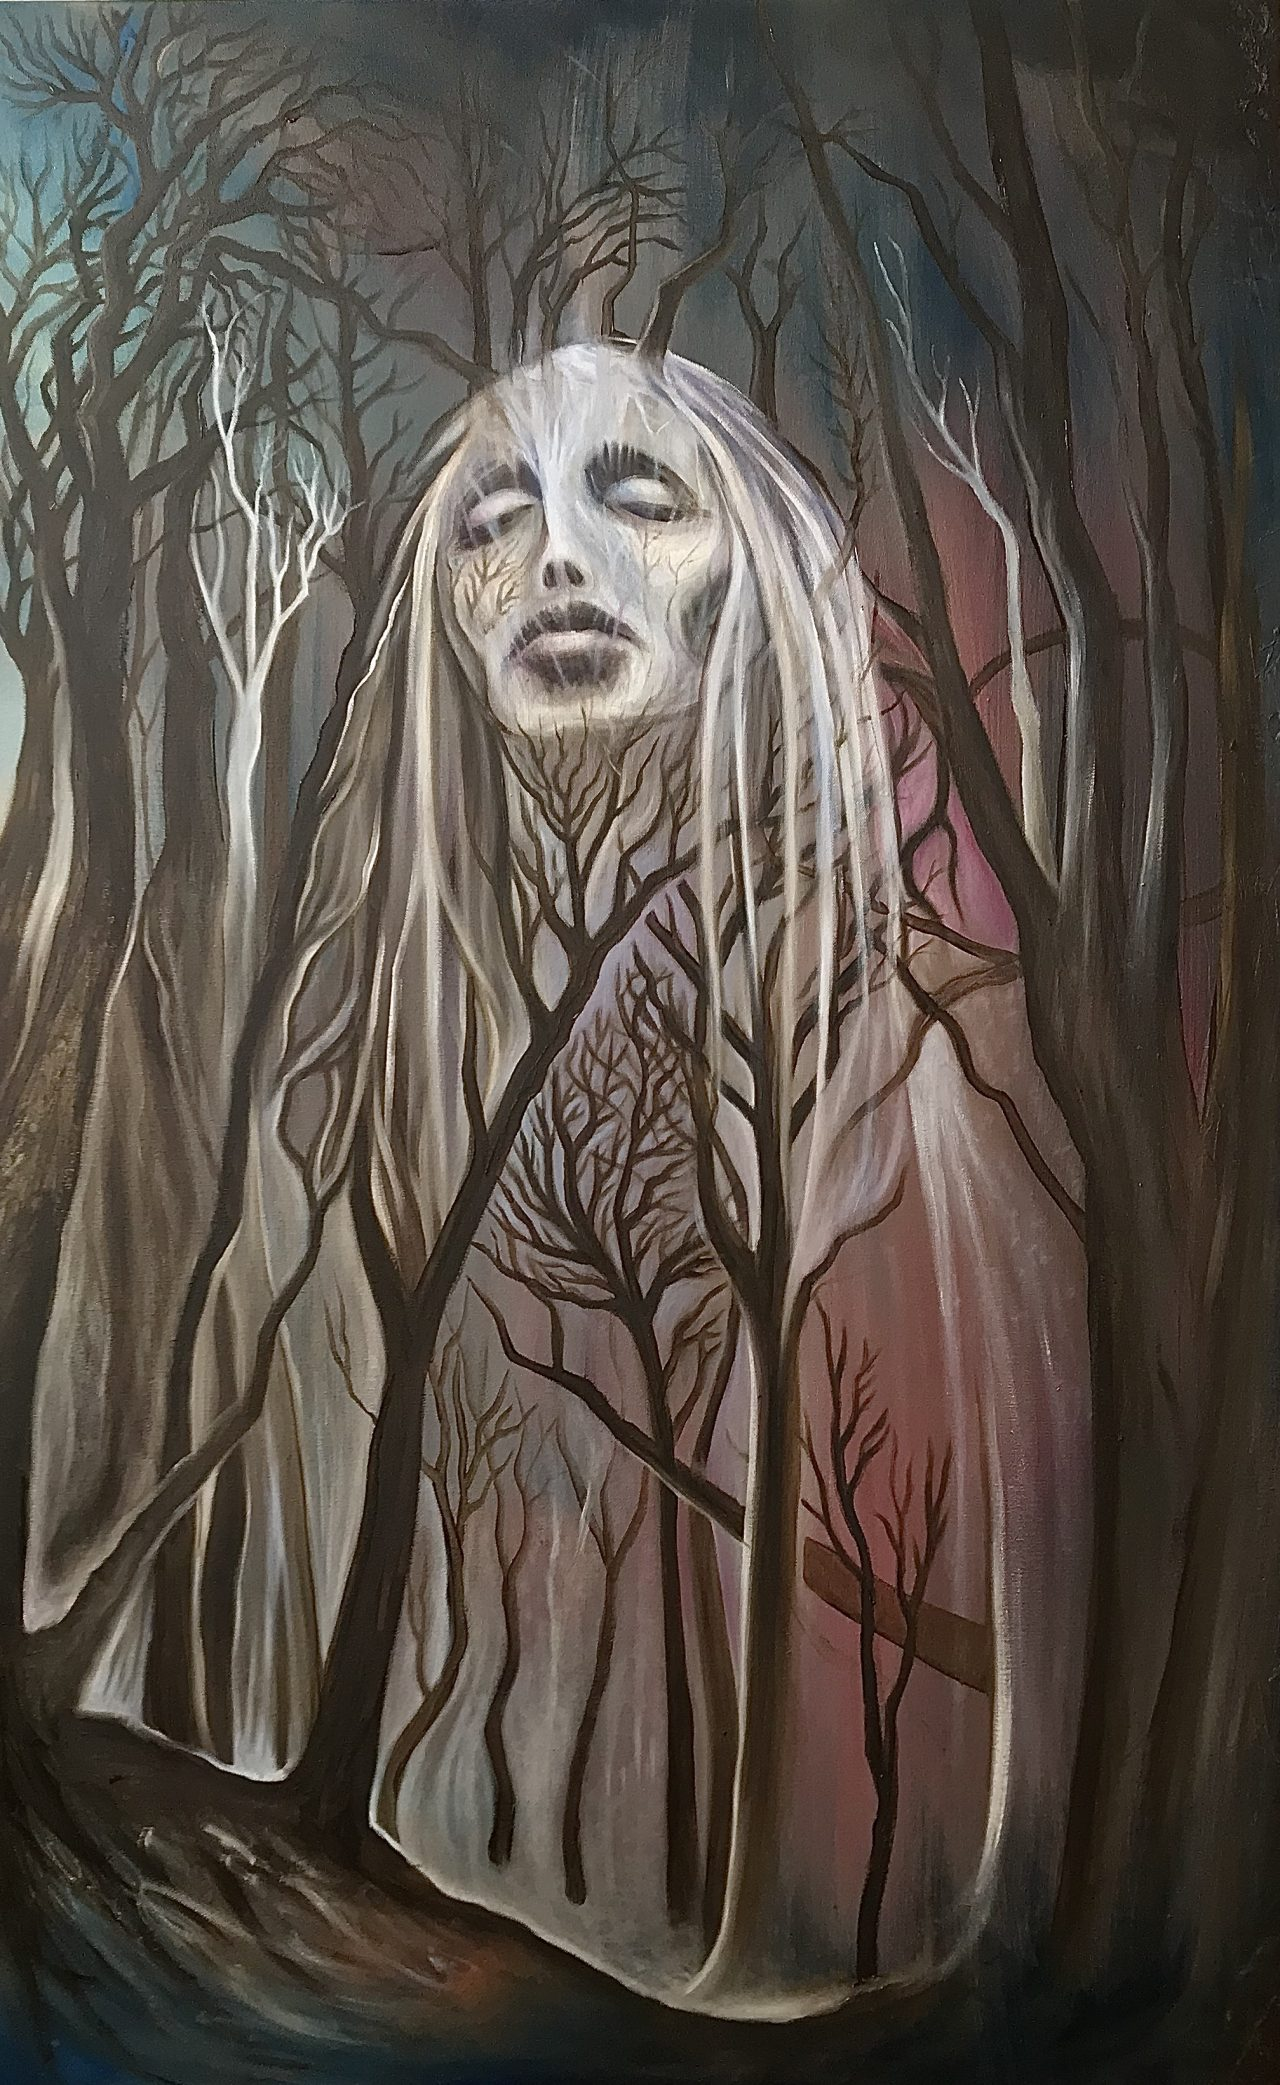 A Wilderness of Ghosts | Oil on canvas | 76 x 122 cm | 2020